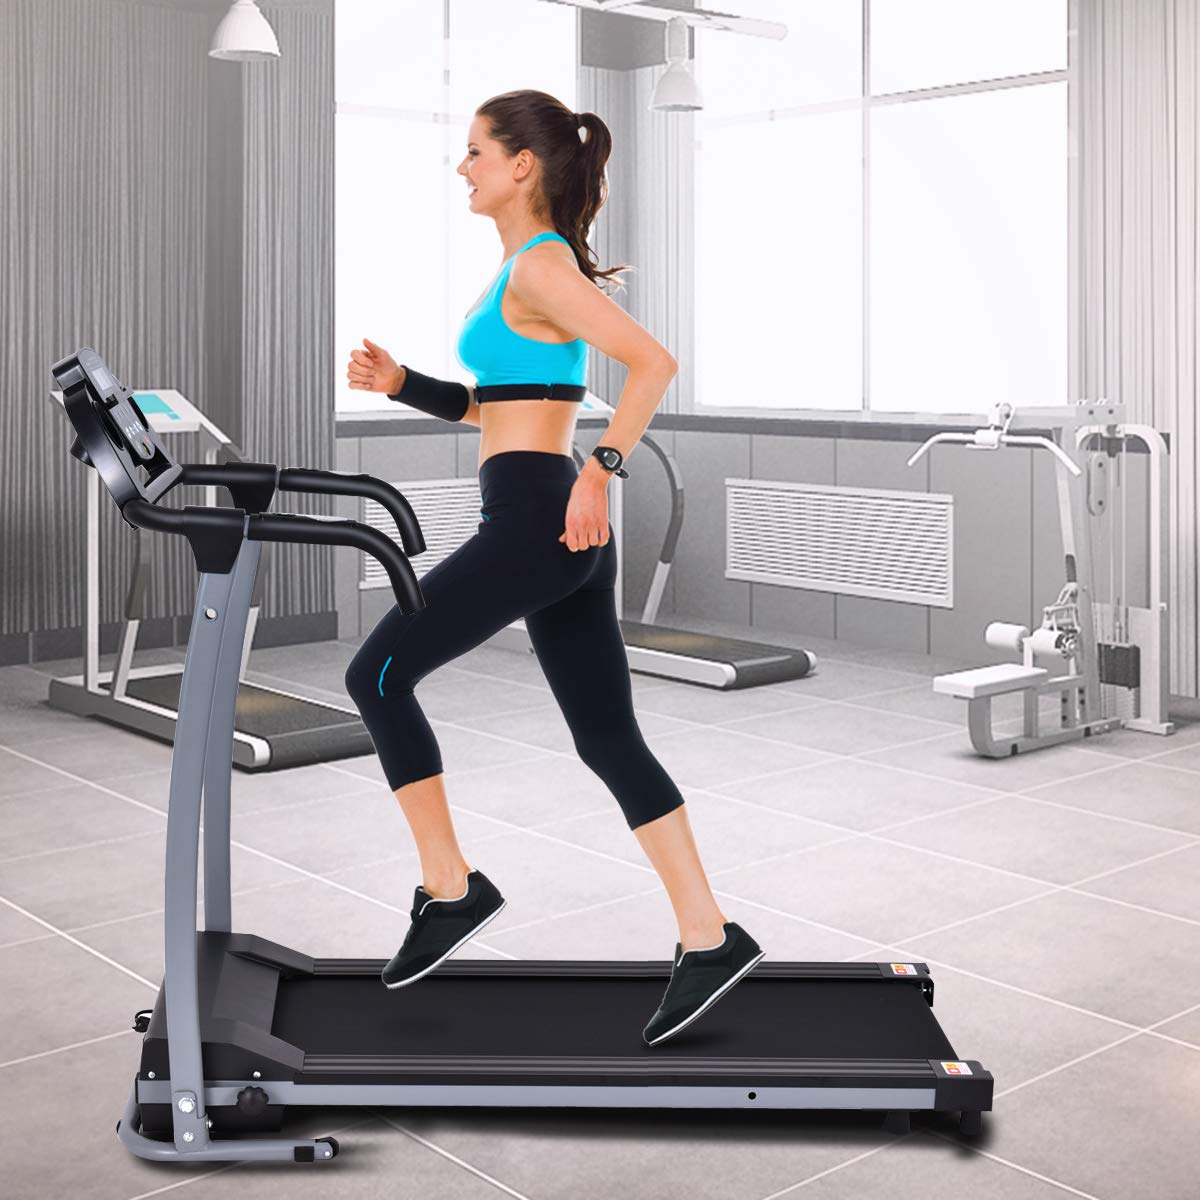 Goplus 800W Folding Treadmill Electric Motorized Power Fitness Running Machine with LED Display and Mobile Phone Holder Perfect for Home Use (Black) by Goplus (Image #2)